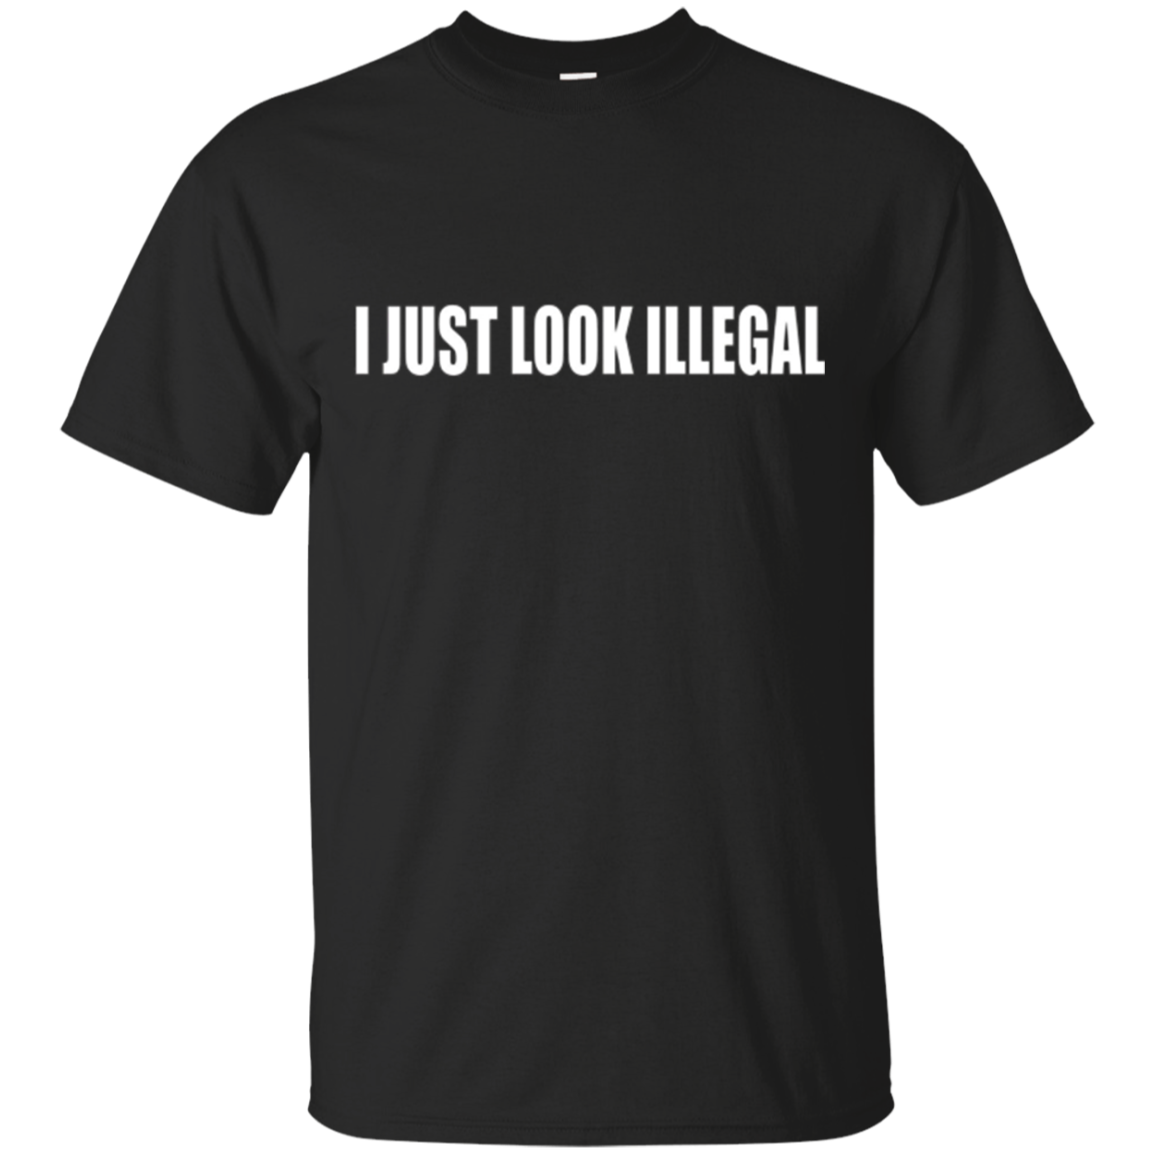 I Just Look Illegal - Funny Trump Political Refugee Shirt